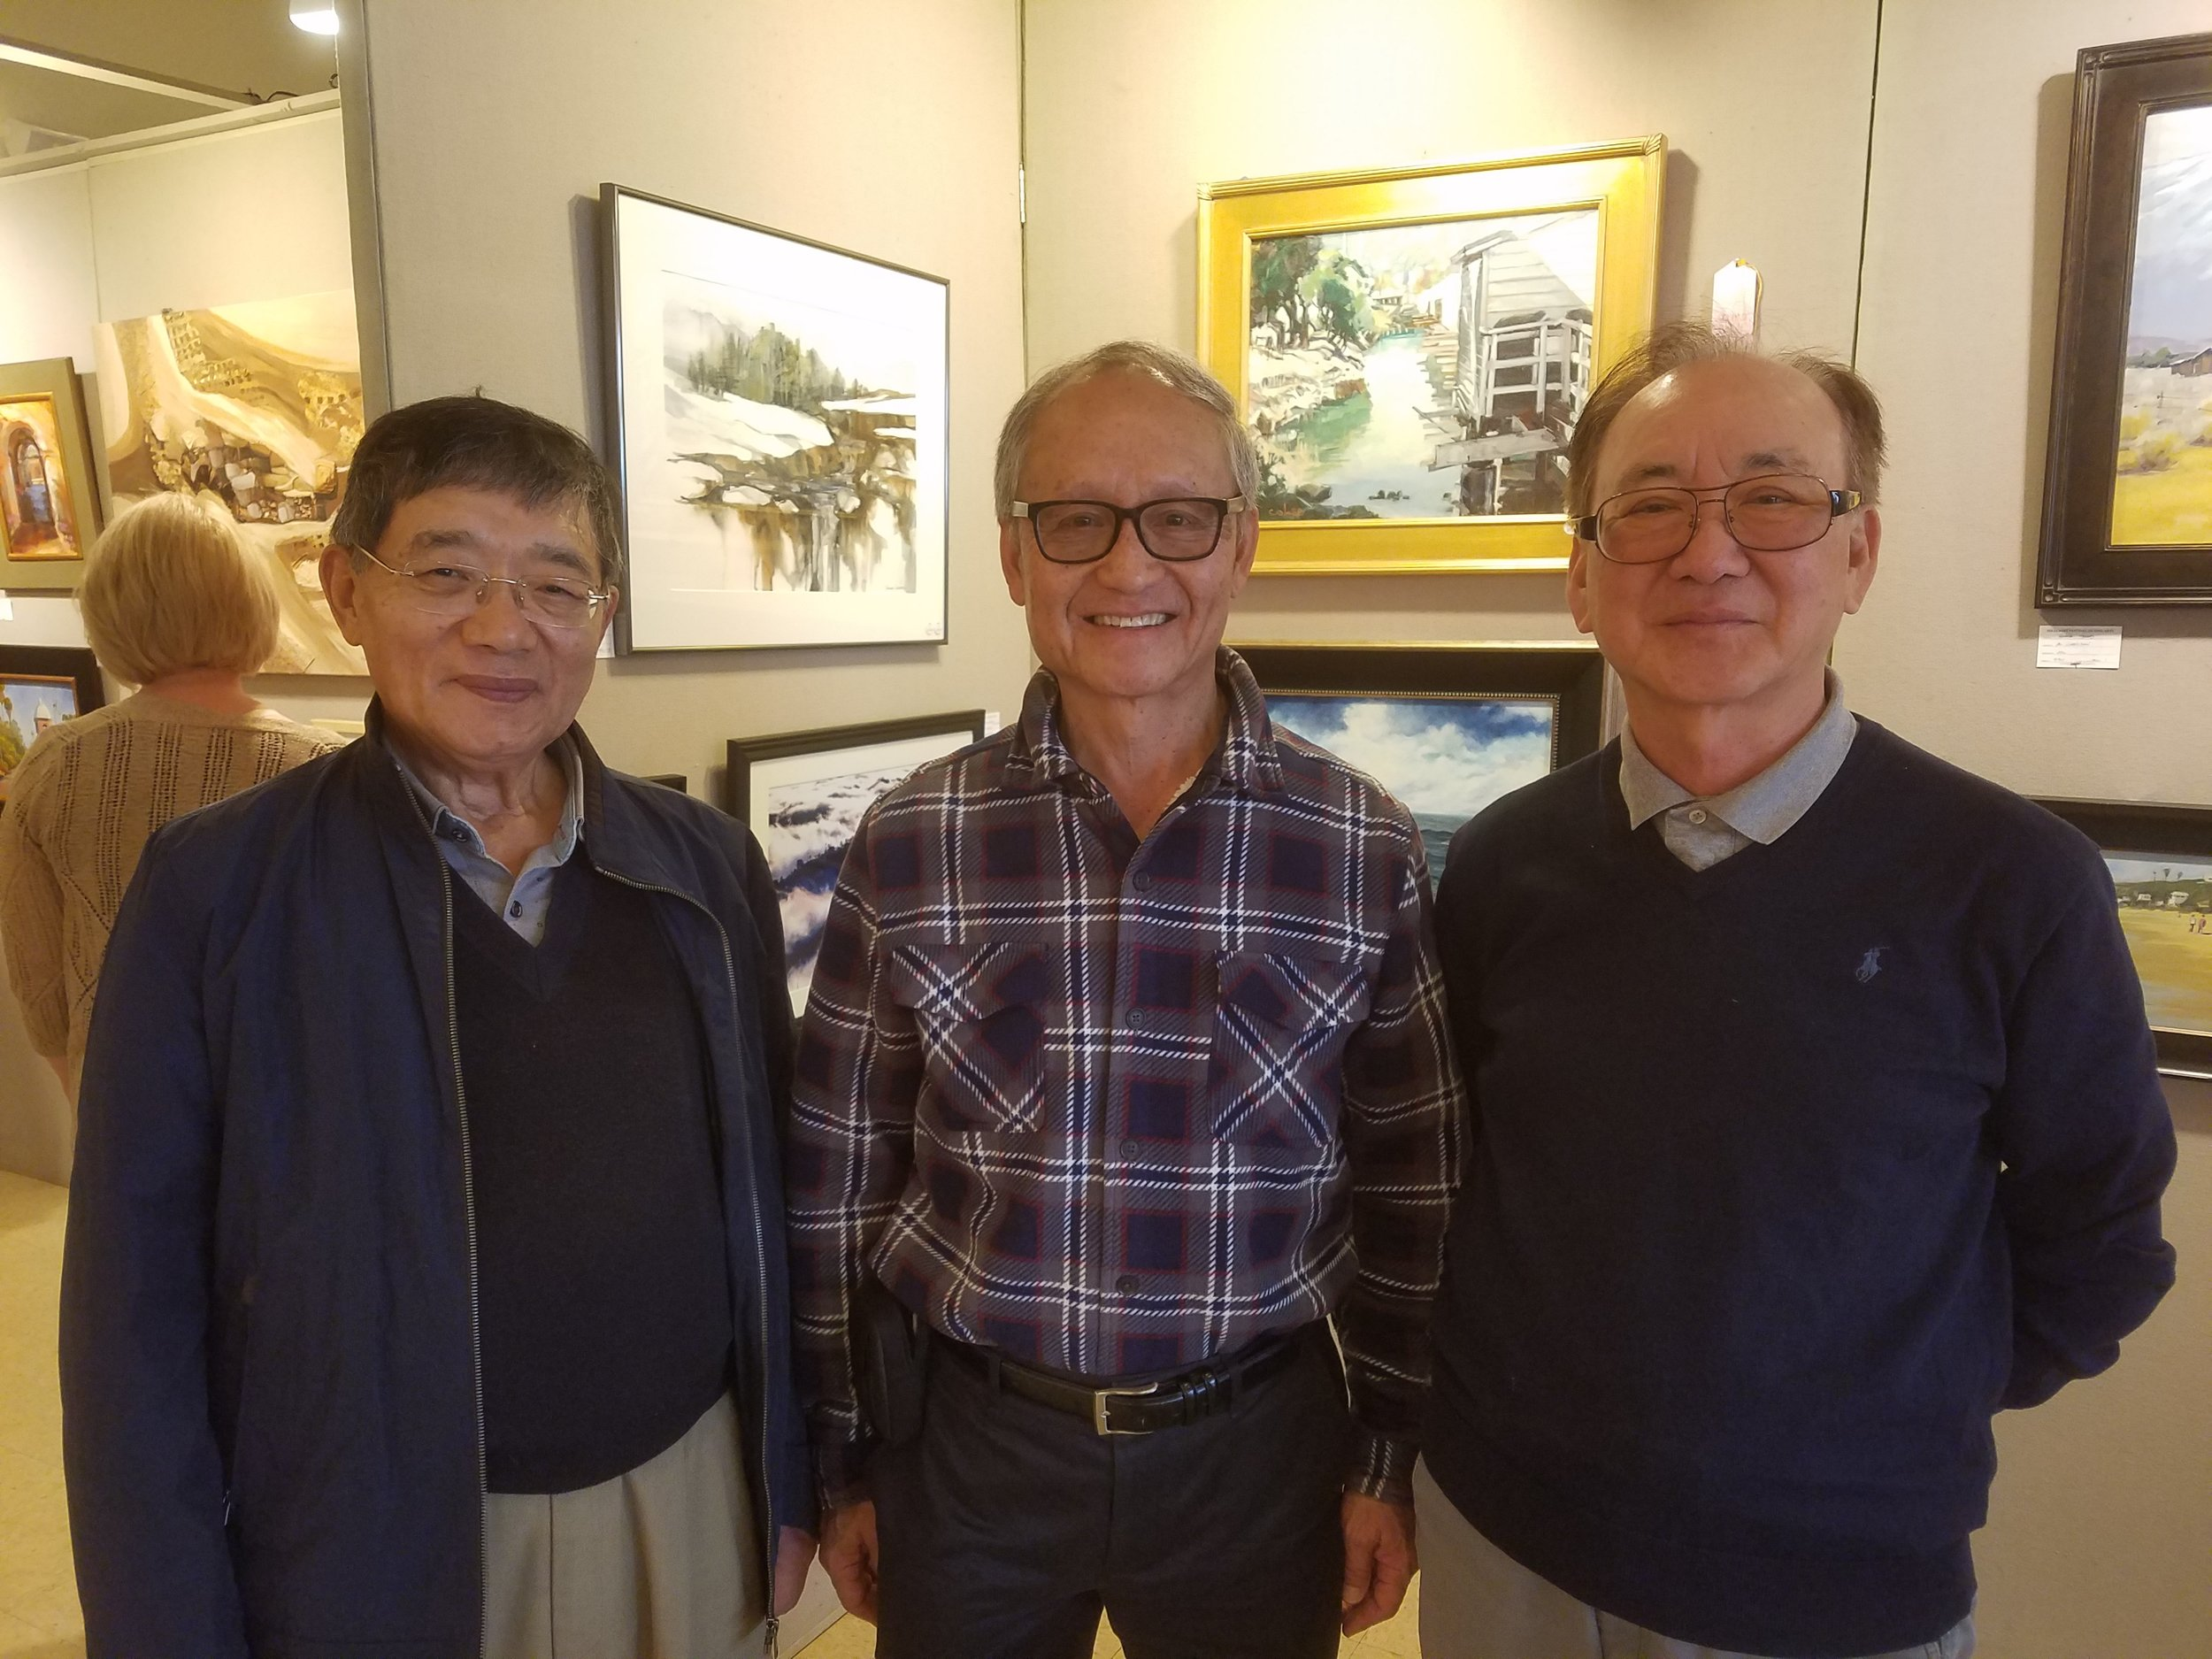 With Walter's patrons, Thomas Choi (right) and Domitian Yoo